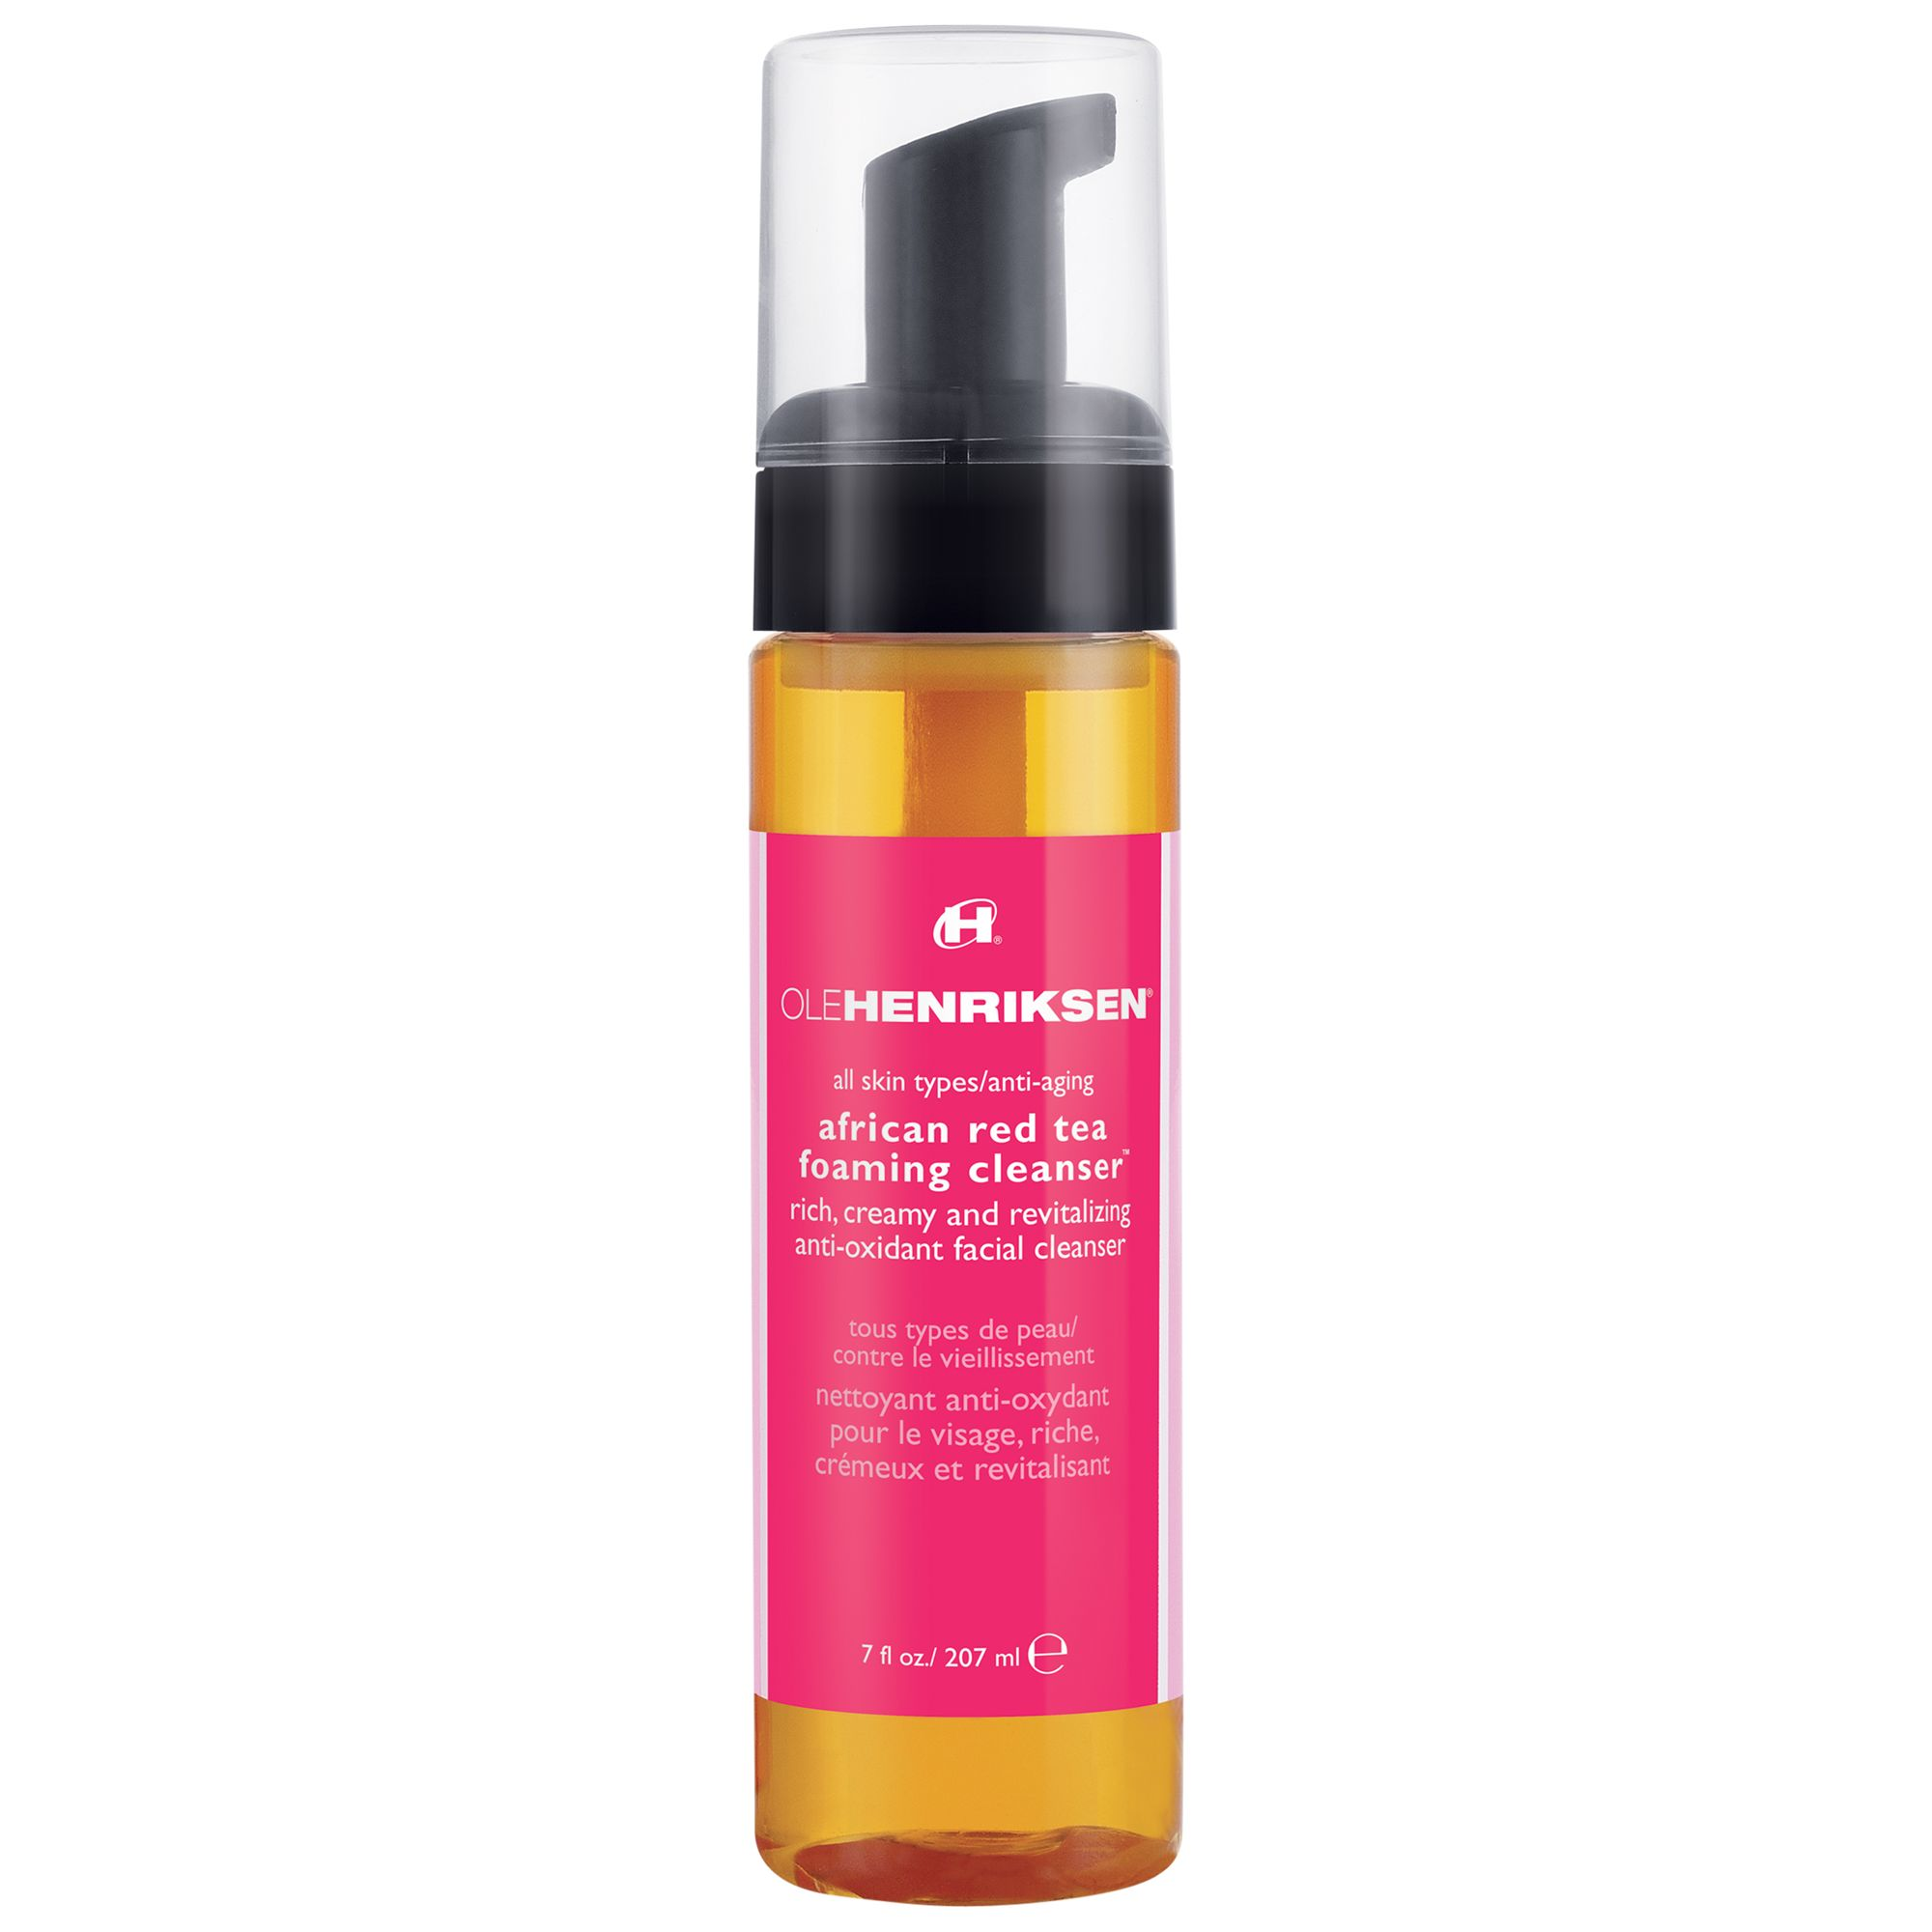 OLEHENRIKSEN OLEHENRIKSEN African Red Tea Foaming Cleanser, 207ml